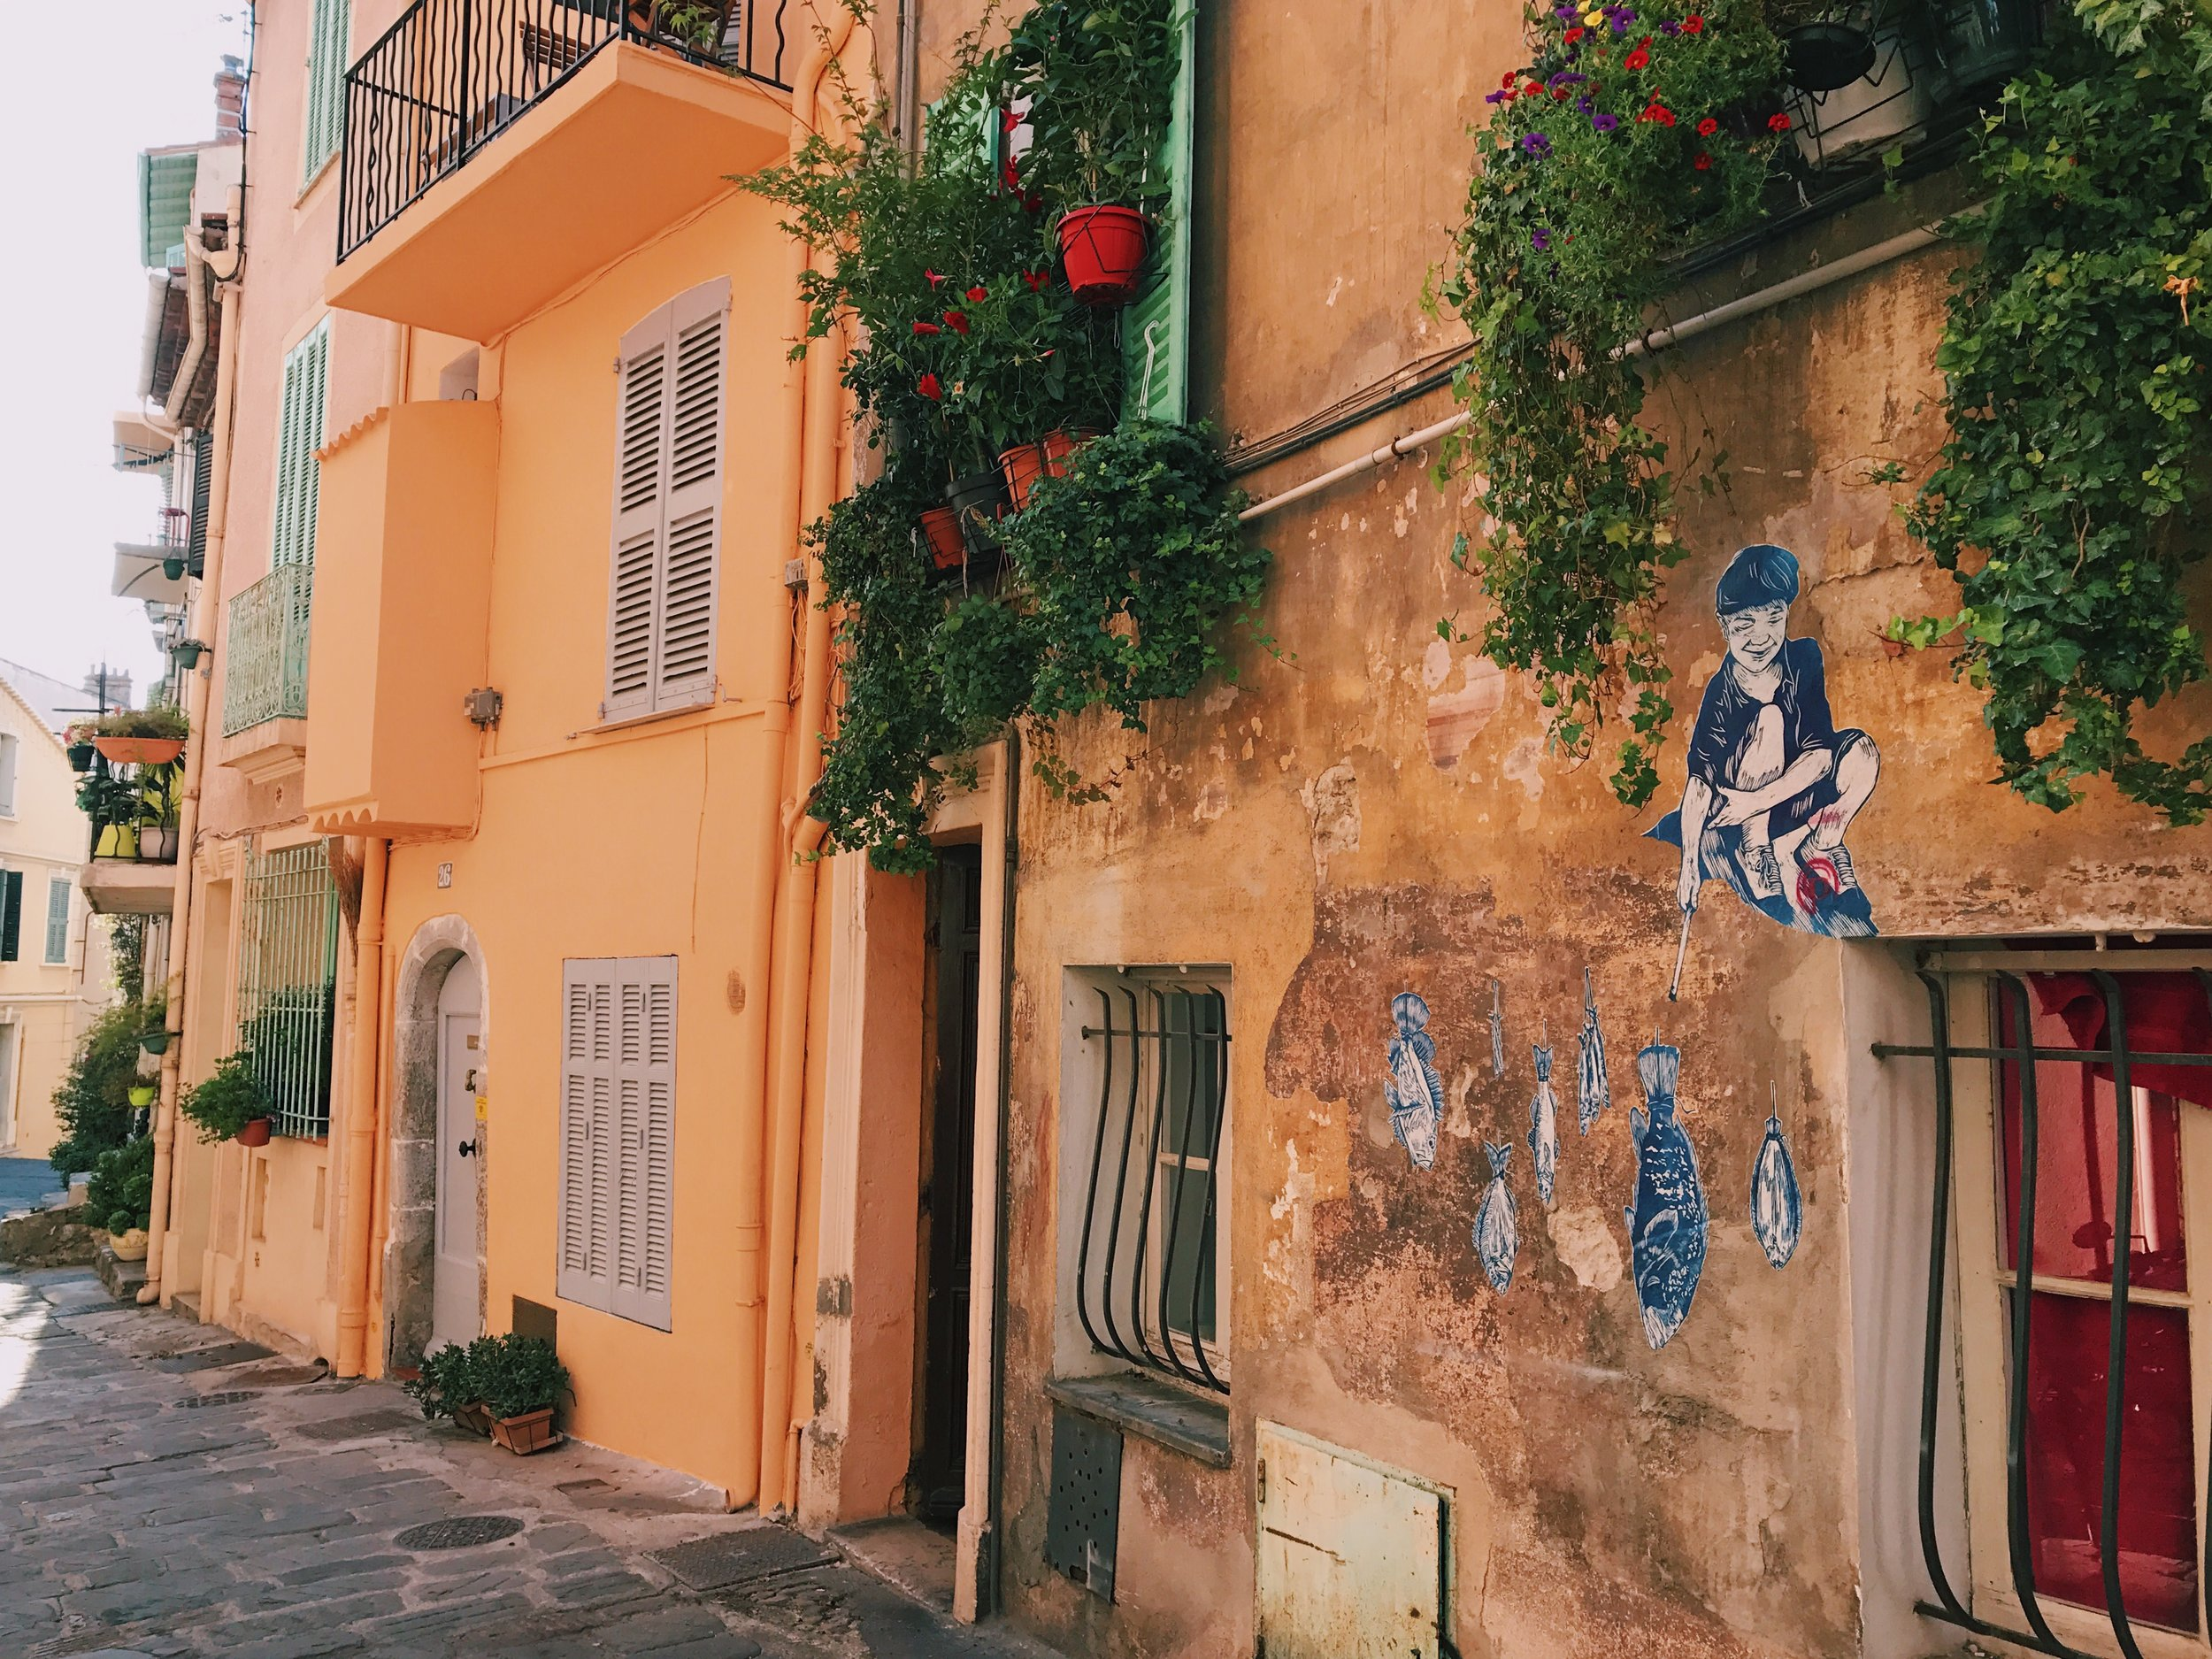 Le Suquet (the old quarter of Cannes) is SO cute!